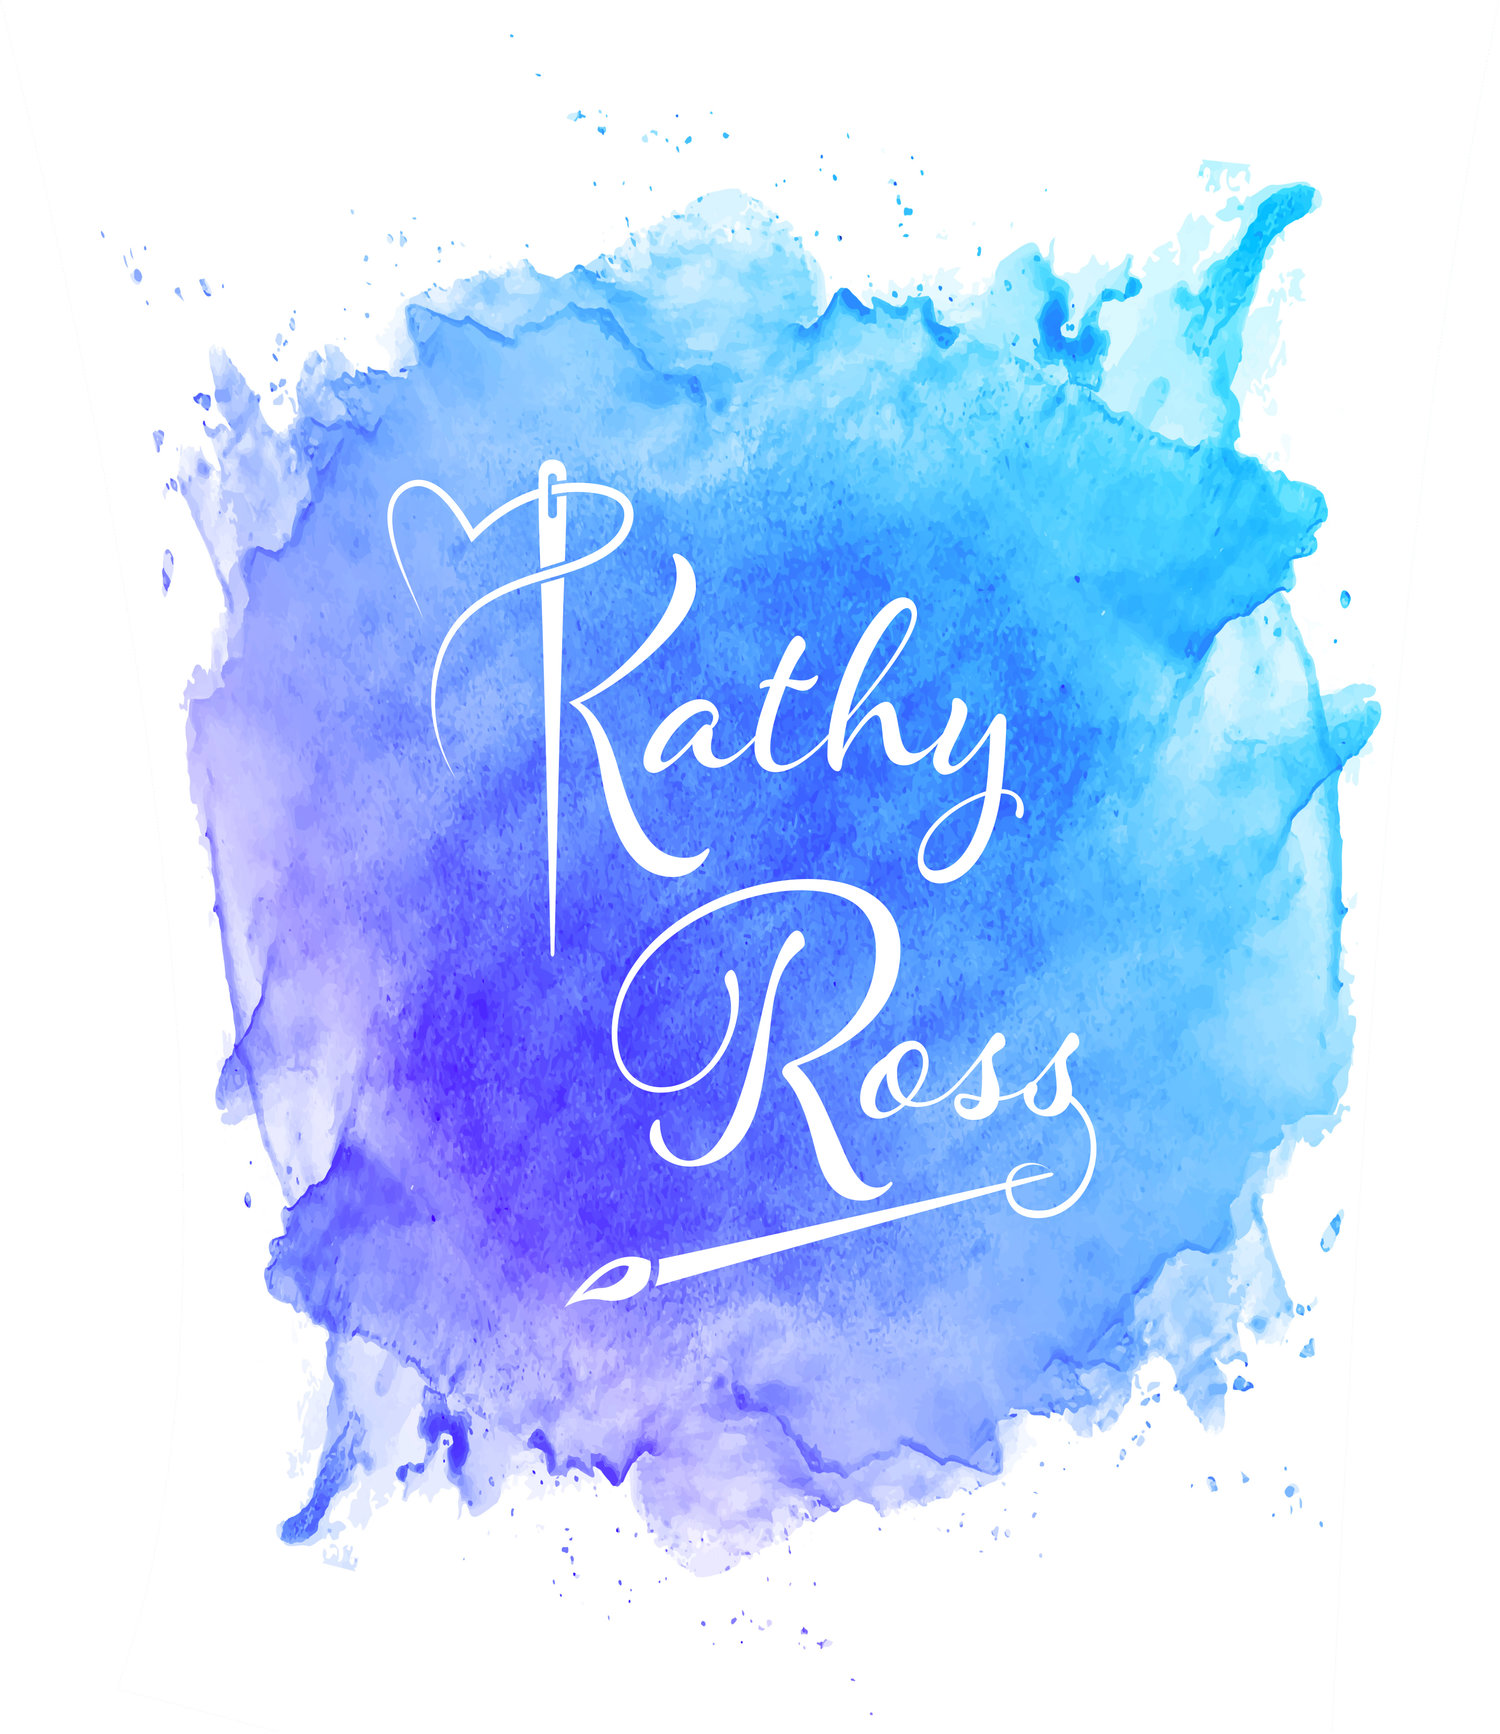 Kathy Ross Art